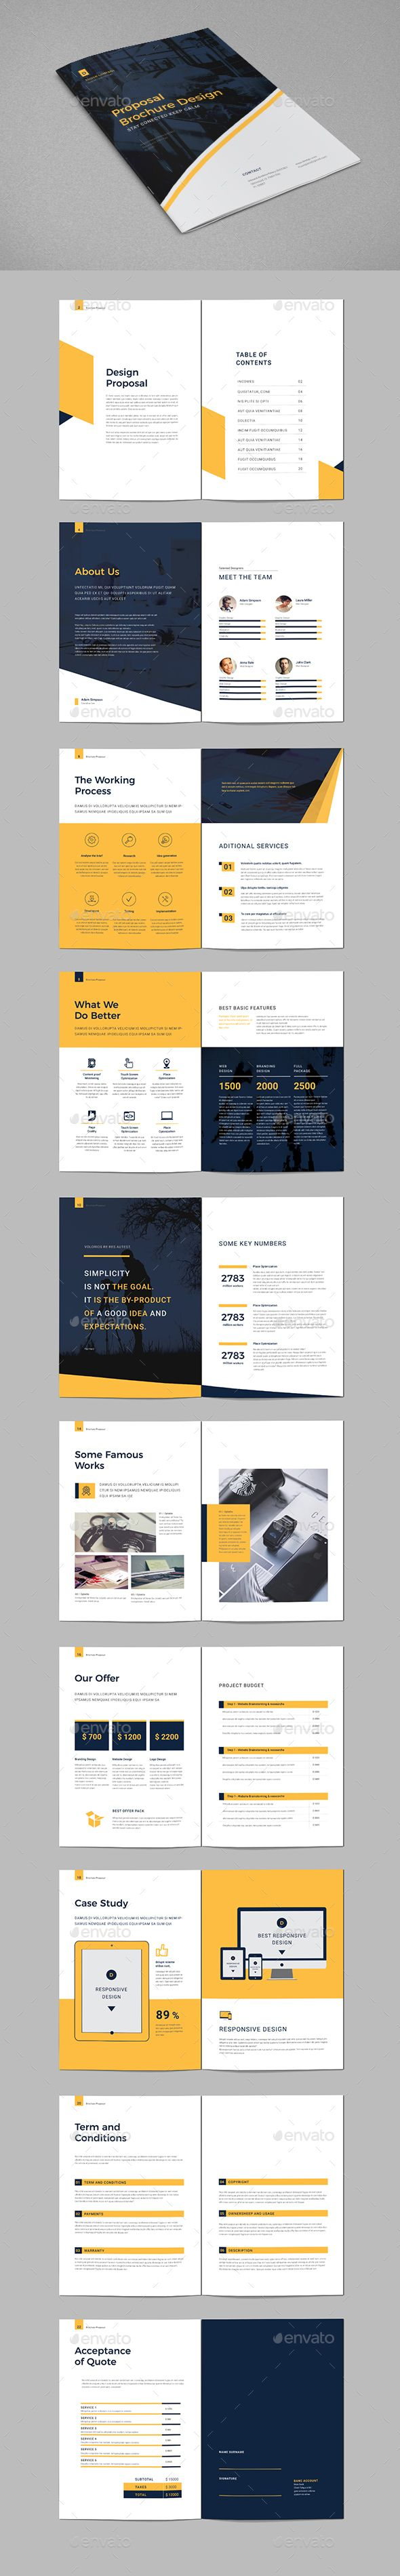 Proposal Brochure Template InDesign INDD